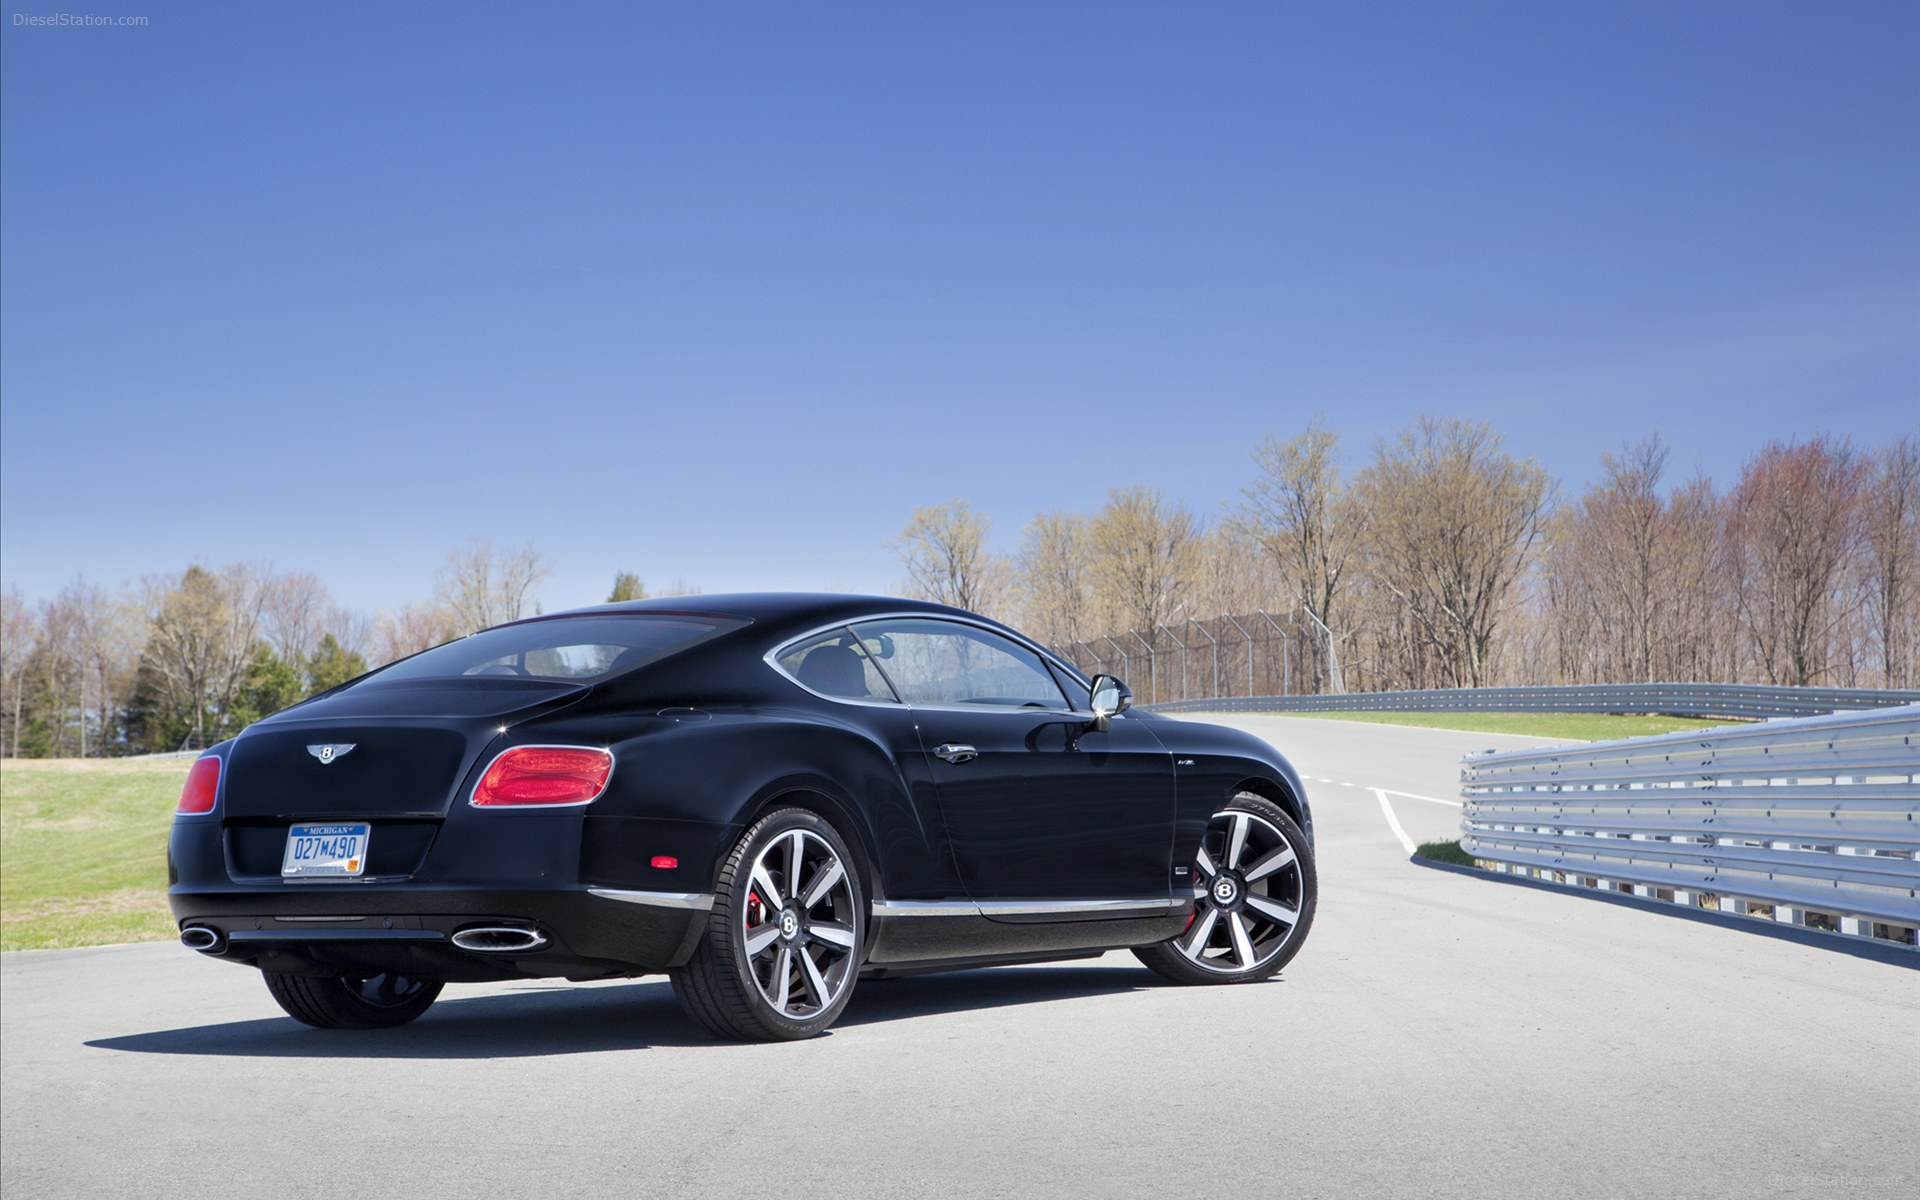 2014 Bentley Continental GT W12 Le Mans Edition photo - 1